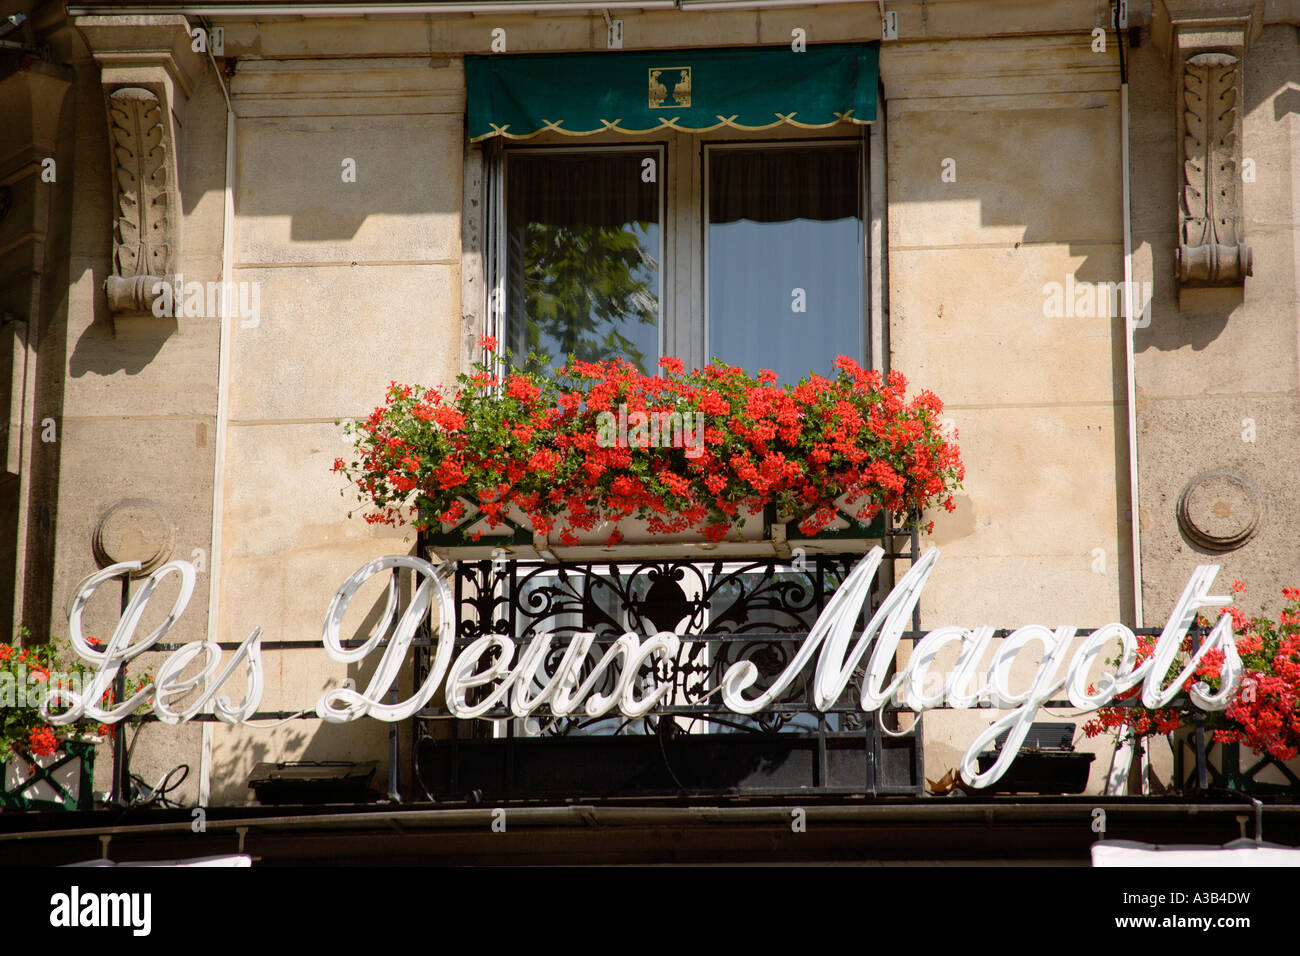 FRANCE Ile de France Paris Left Bank Place St Germain des Pres Les Deux Magots famous literary cafe frequented by - Stock Image